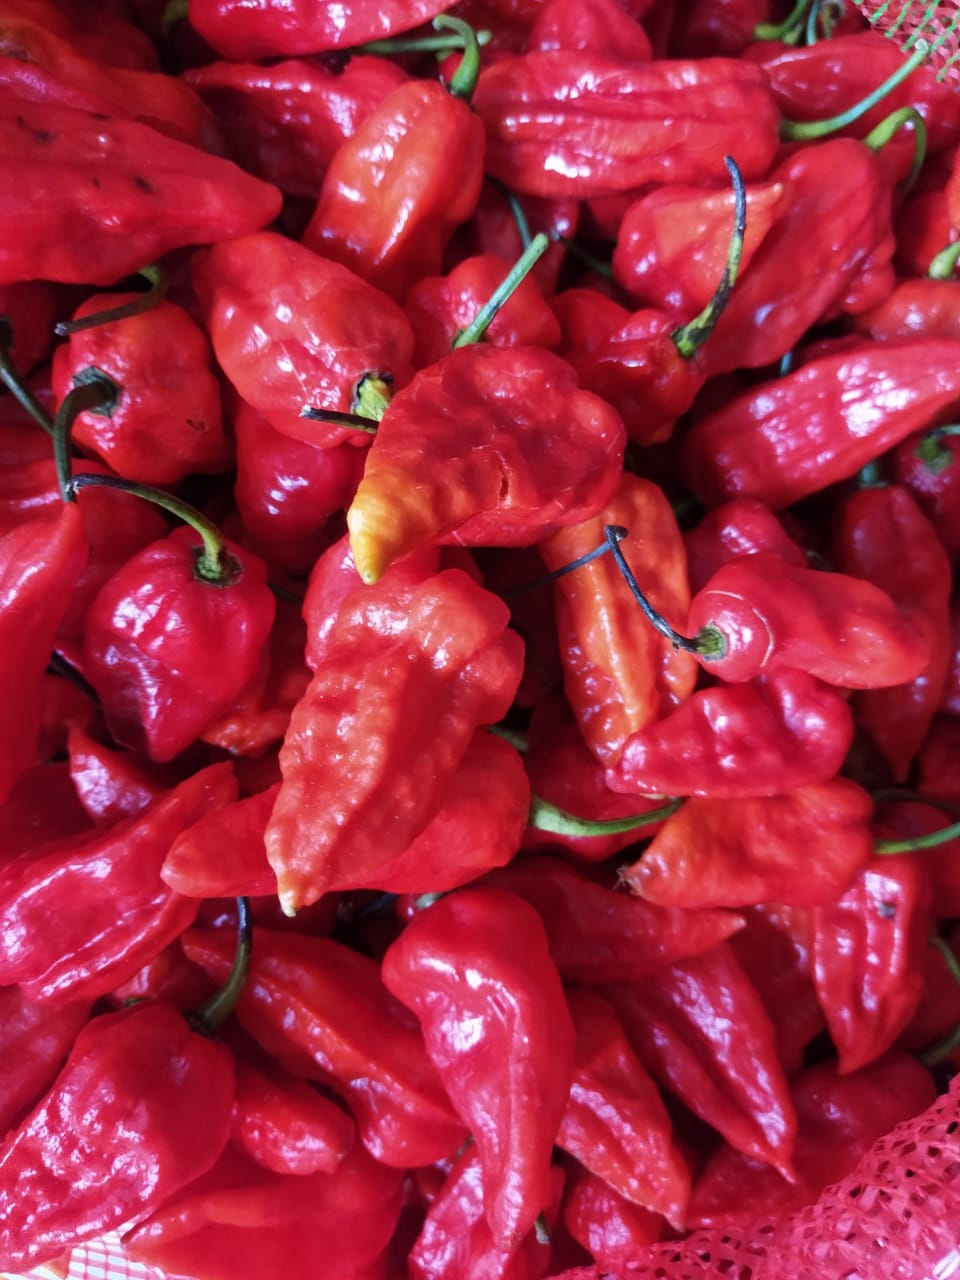 Procurement of King Chilli / Bhut Jolokia from the farmers of Upper Assam